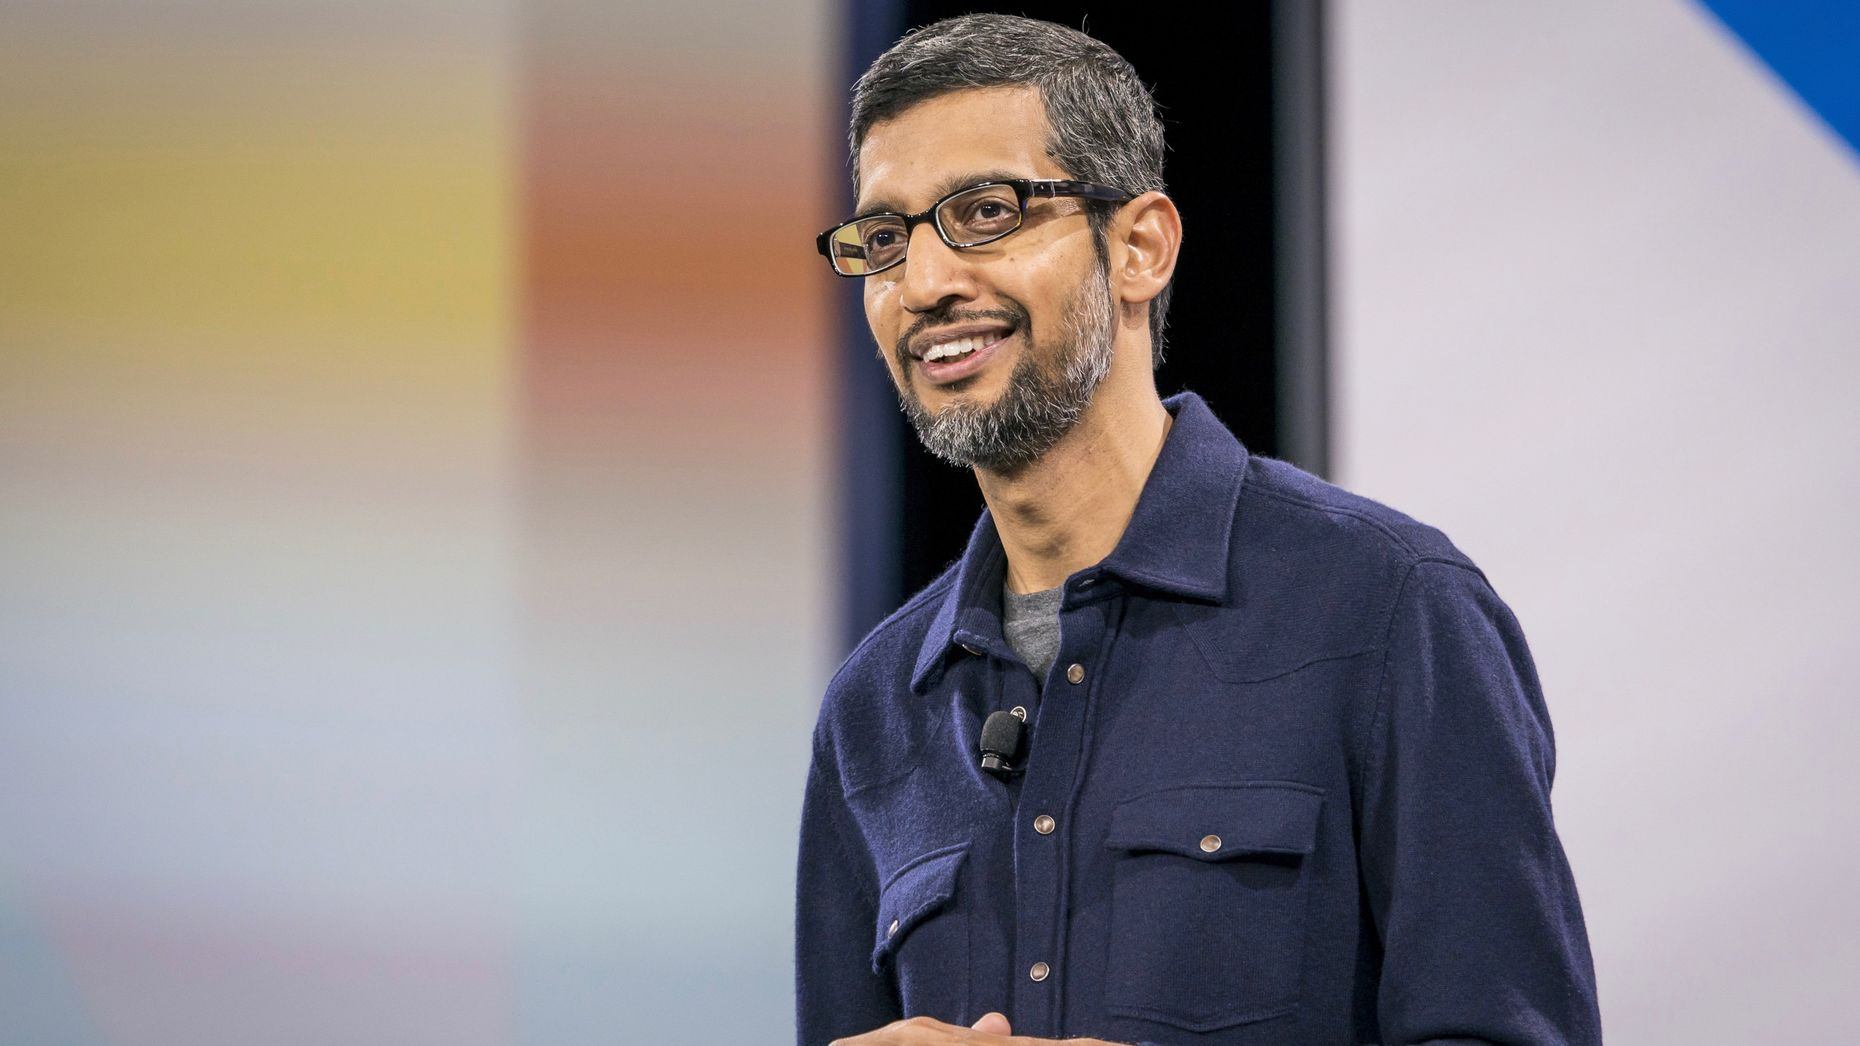 Google CEO Sundar Pichai. Photo by Bloomberg